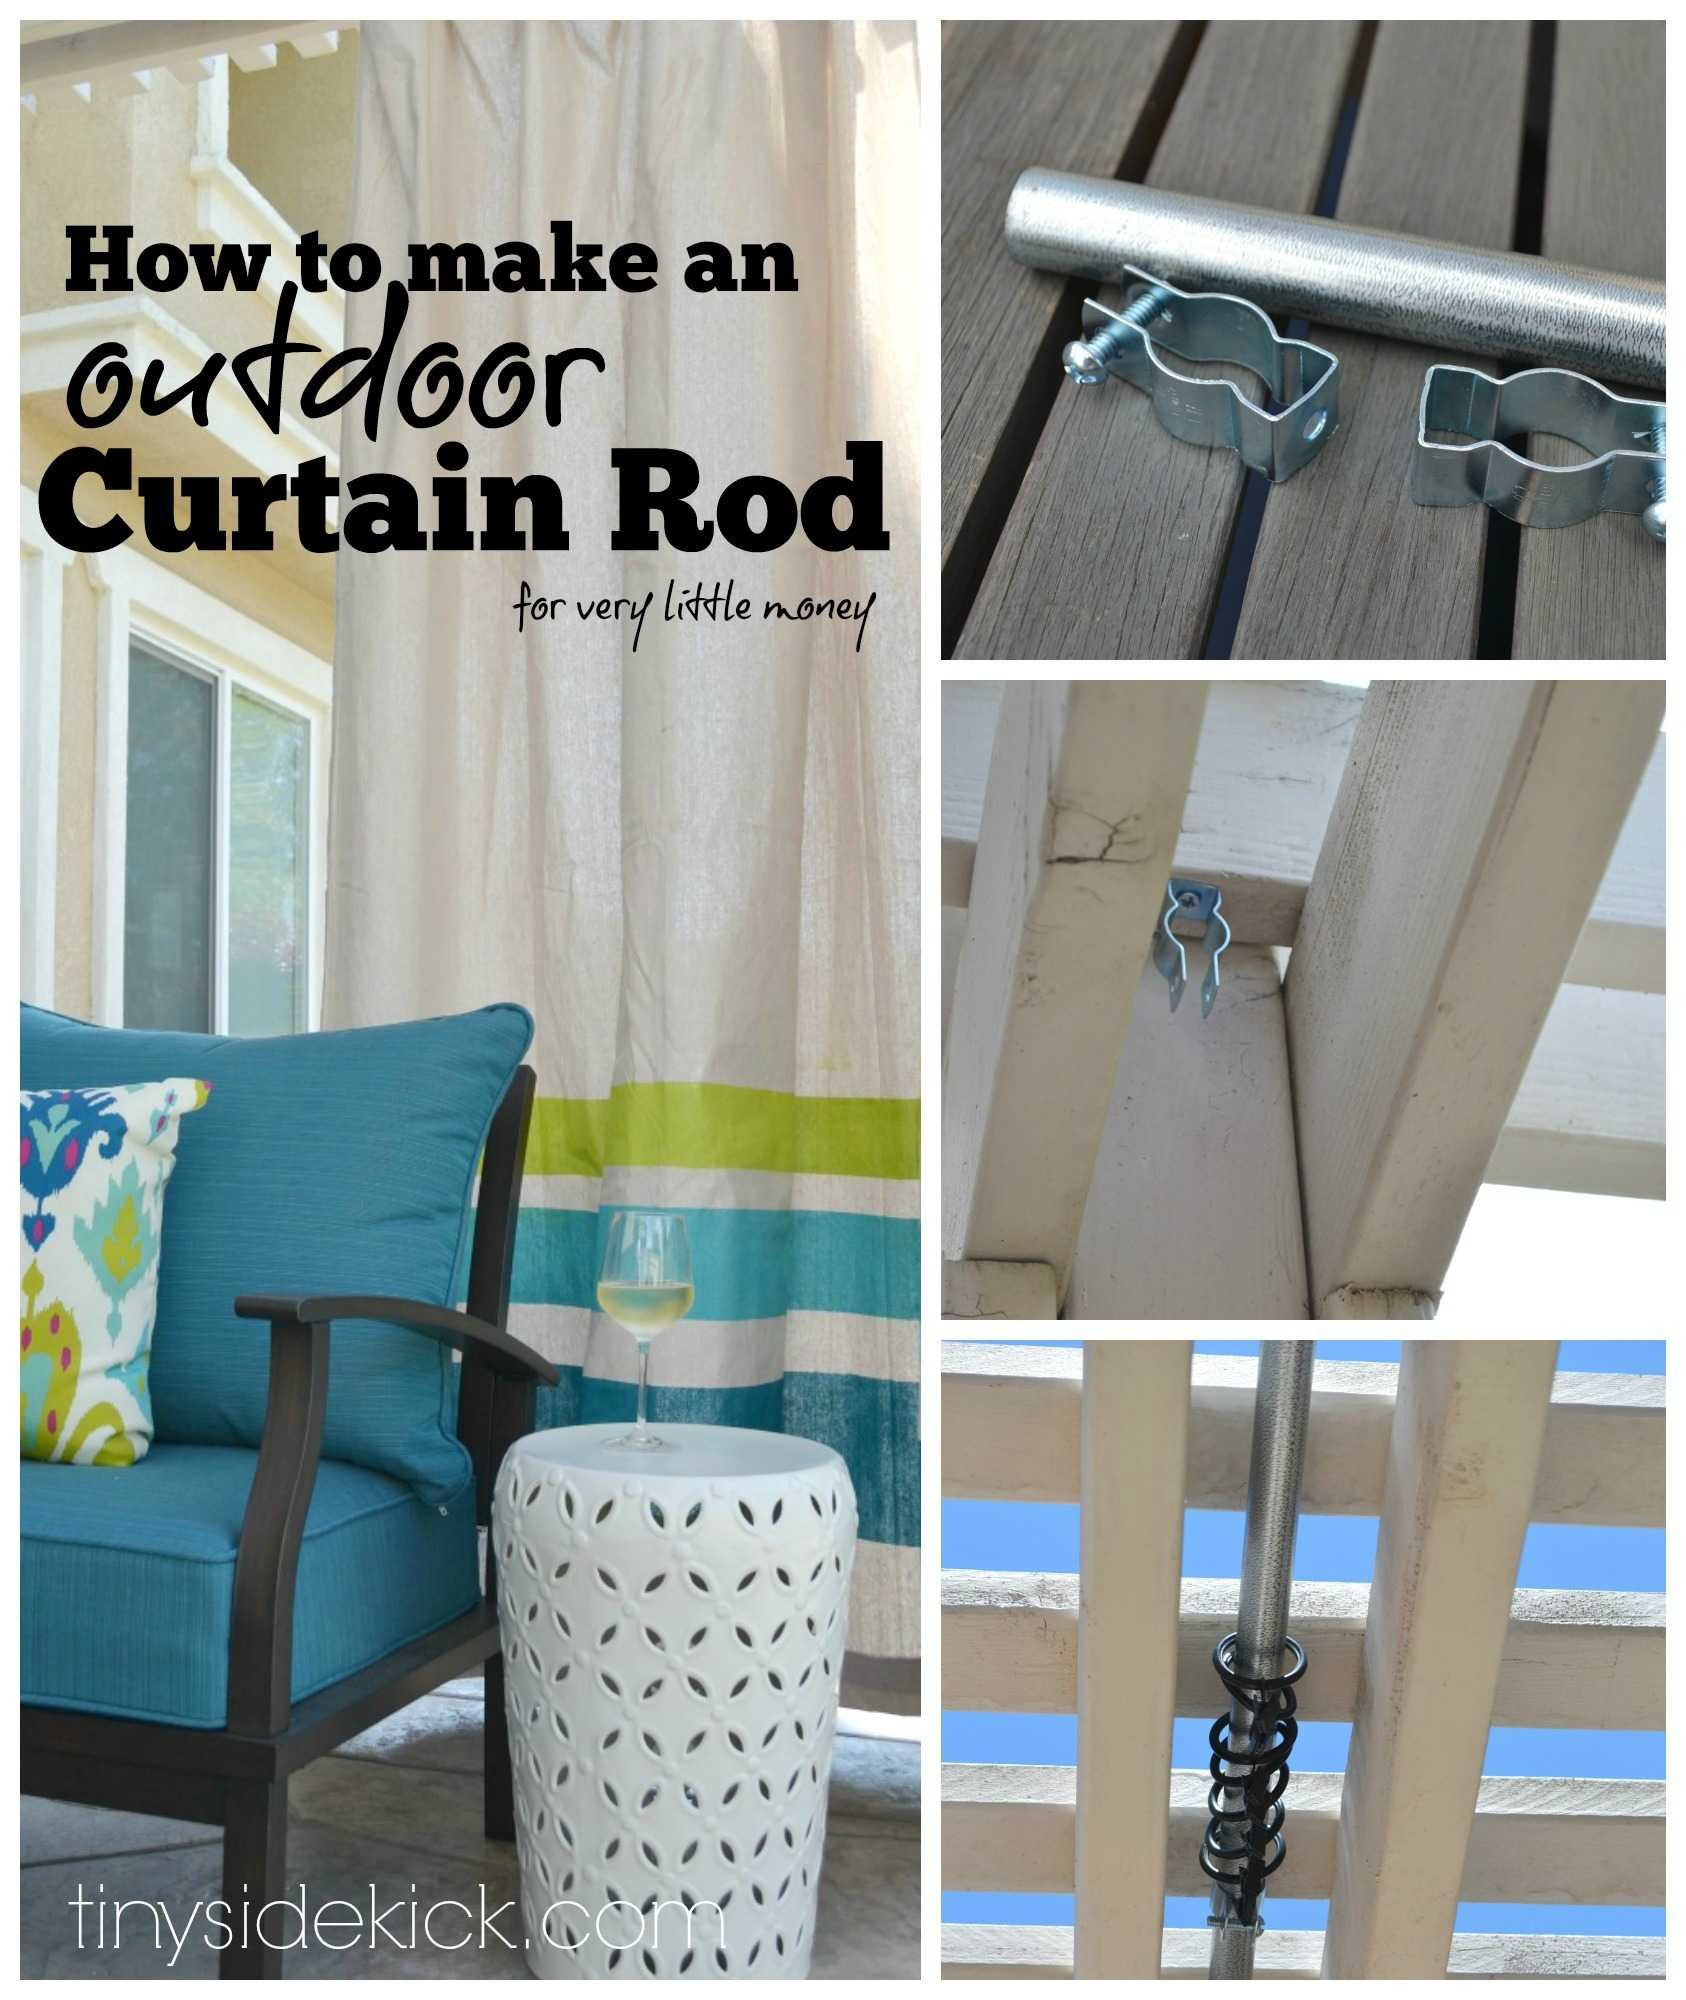 DIY Outdoor Curtain Rod  How to Make an Outdoor Curtain Rod for Very Little Money